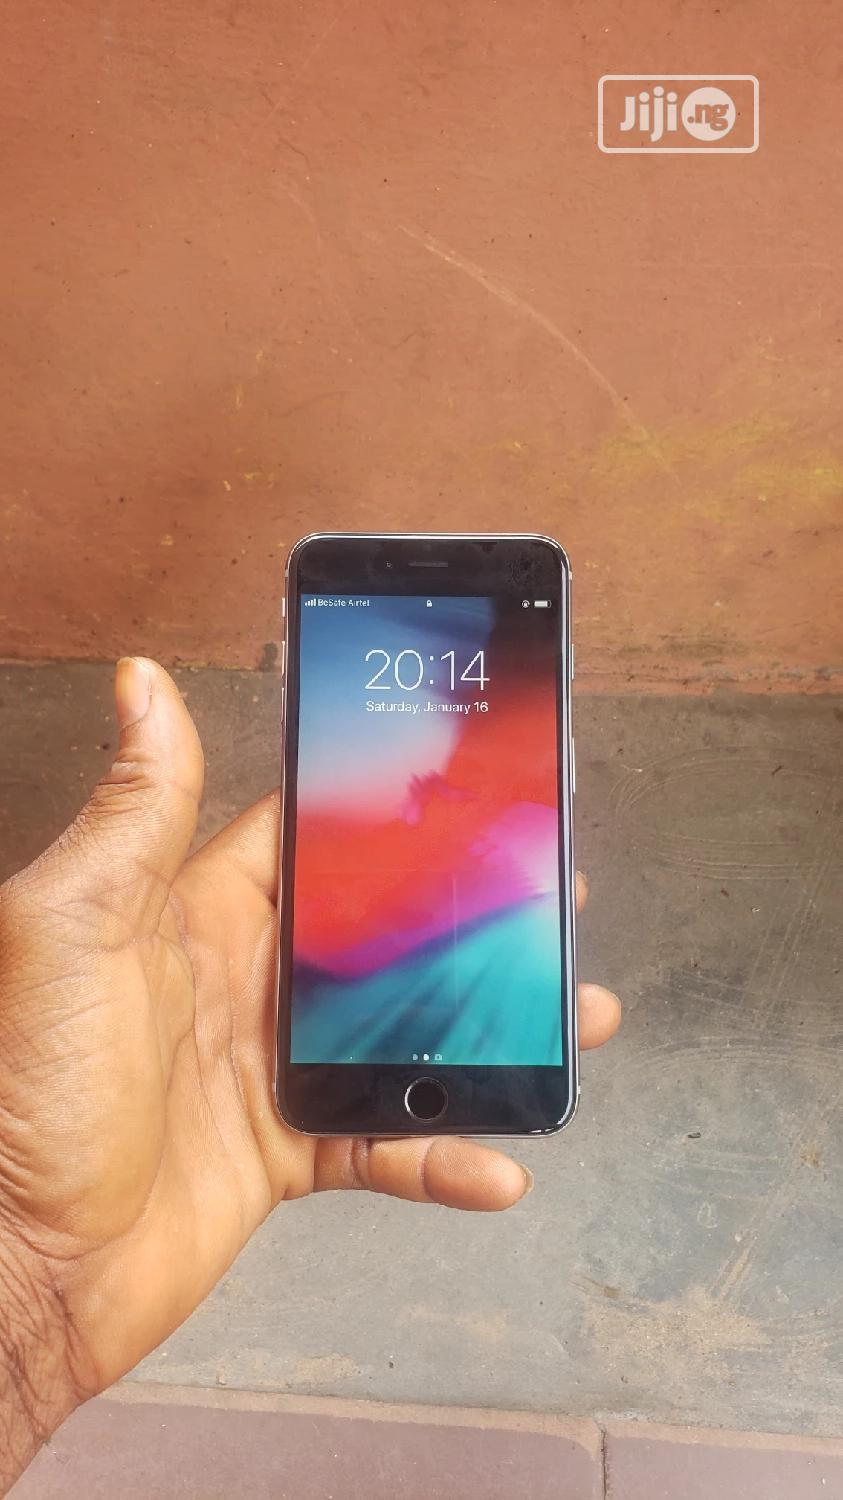 Apple iPhone 6 Plus 16 GB Silver   Mobile Phones for sale in Akure, Ondo State, Nigeria